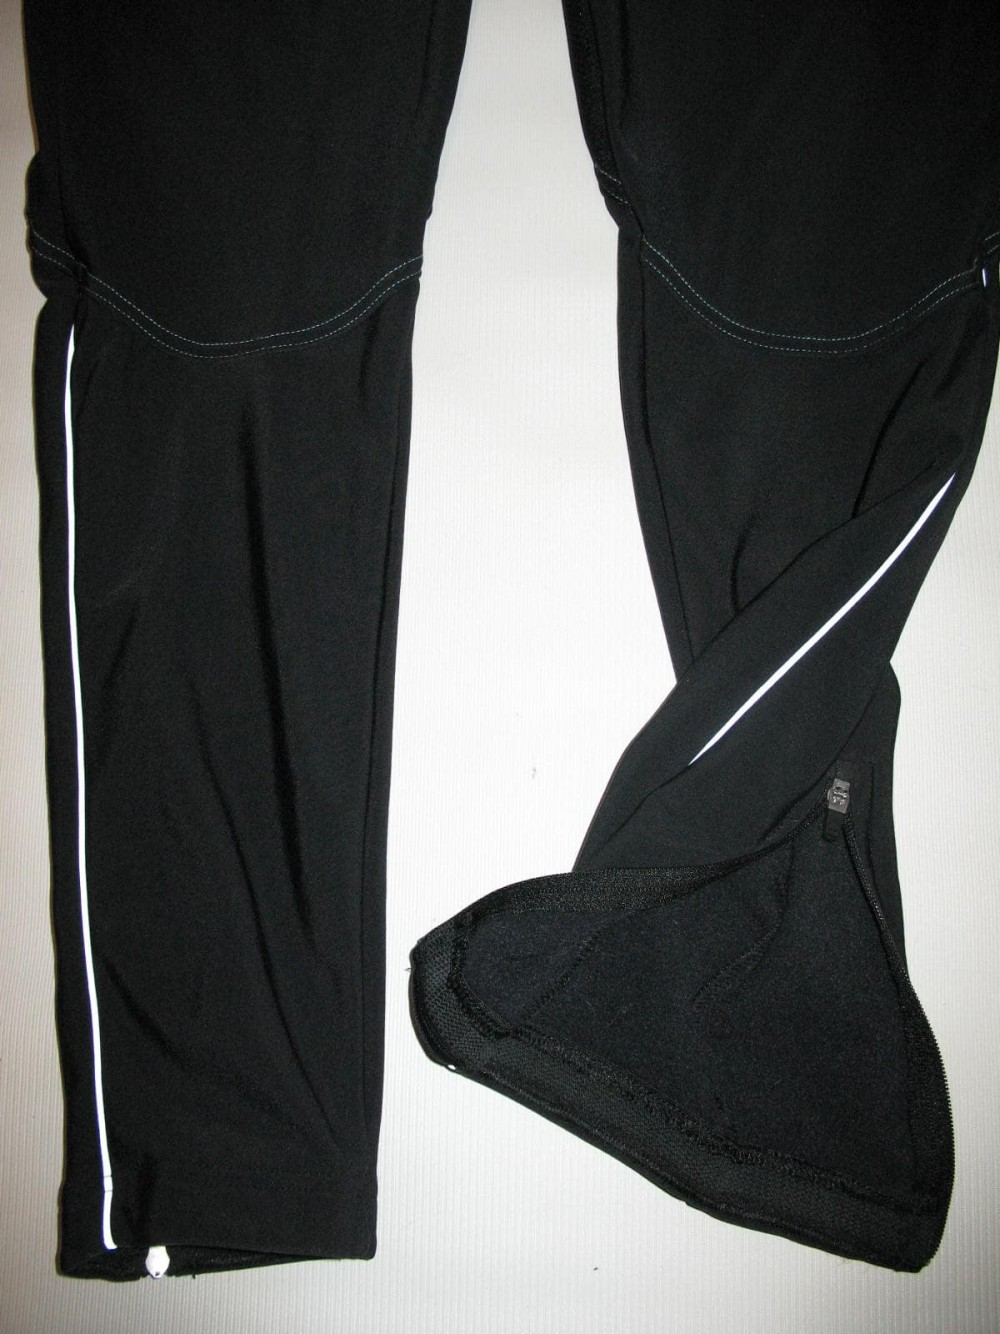 Велобрюки BTWIN collant sport thermal pants lady (размер L/M) - 5